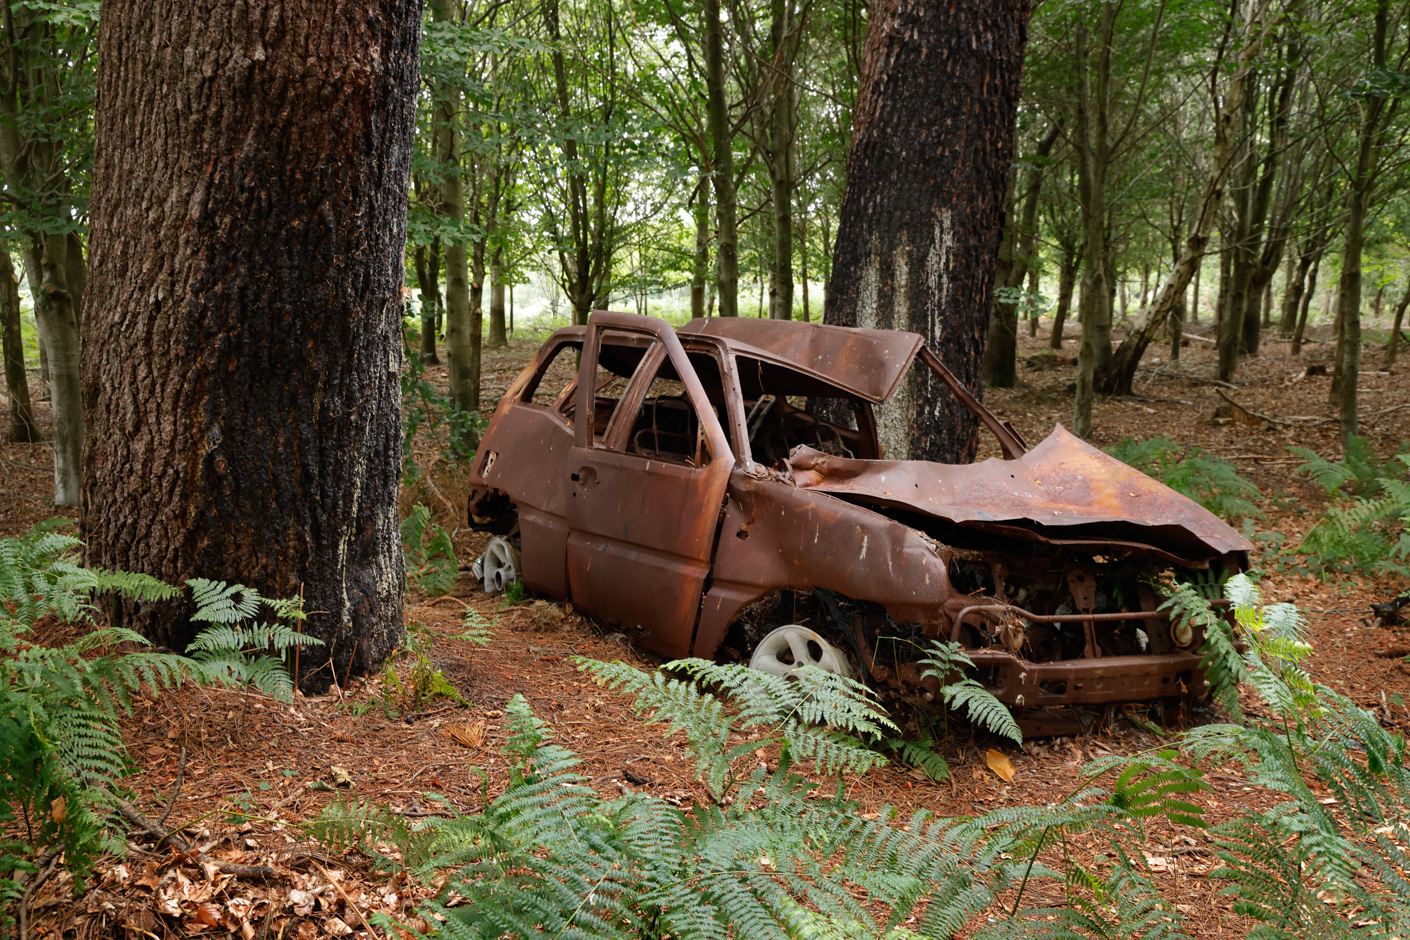 An abandoned car in Wareham Forest, Dorset. Canon EOS R5, RF 24-105mm f4L IS USM Lens at 35mm, 1/60 sec at f/8, ISO 1600